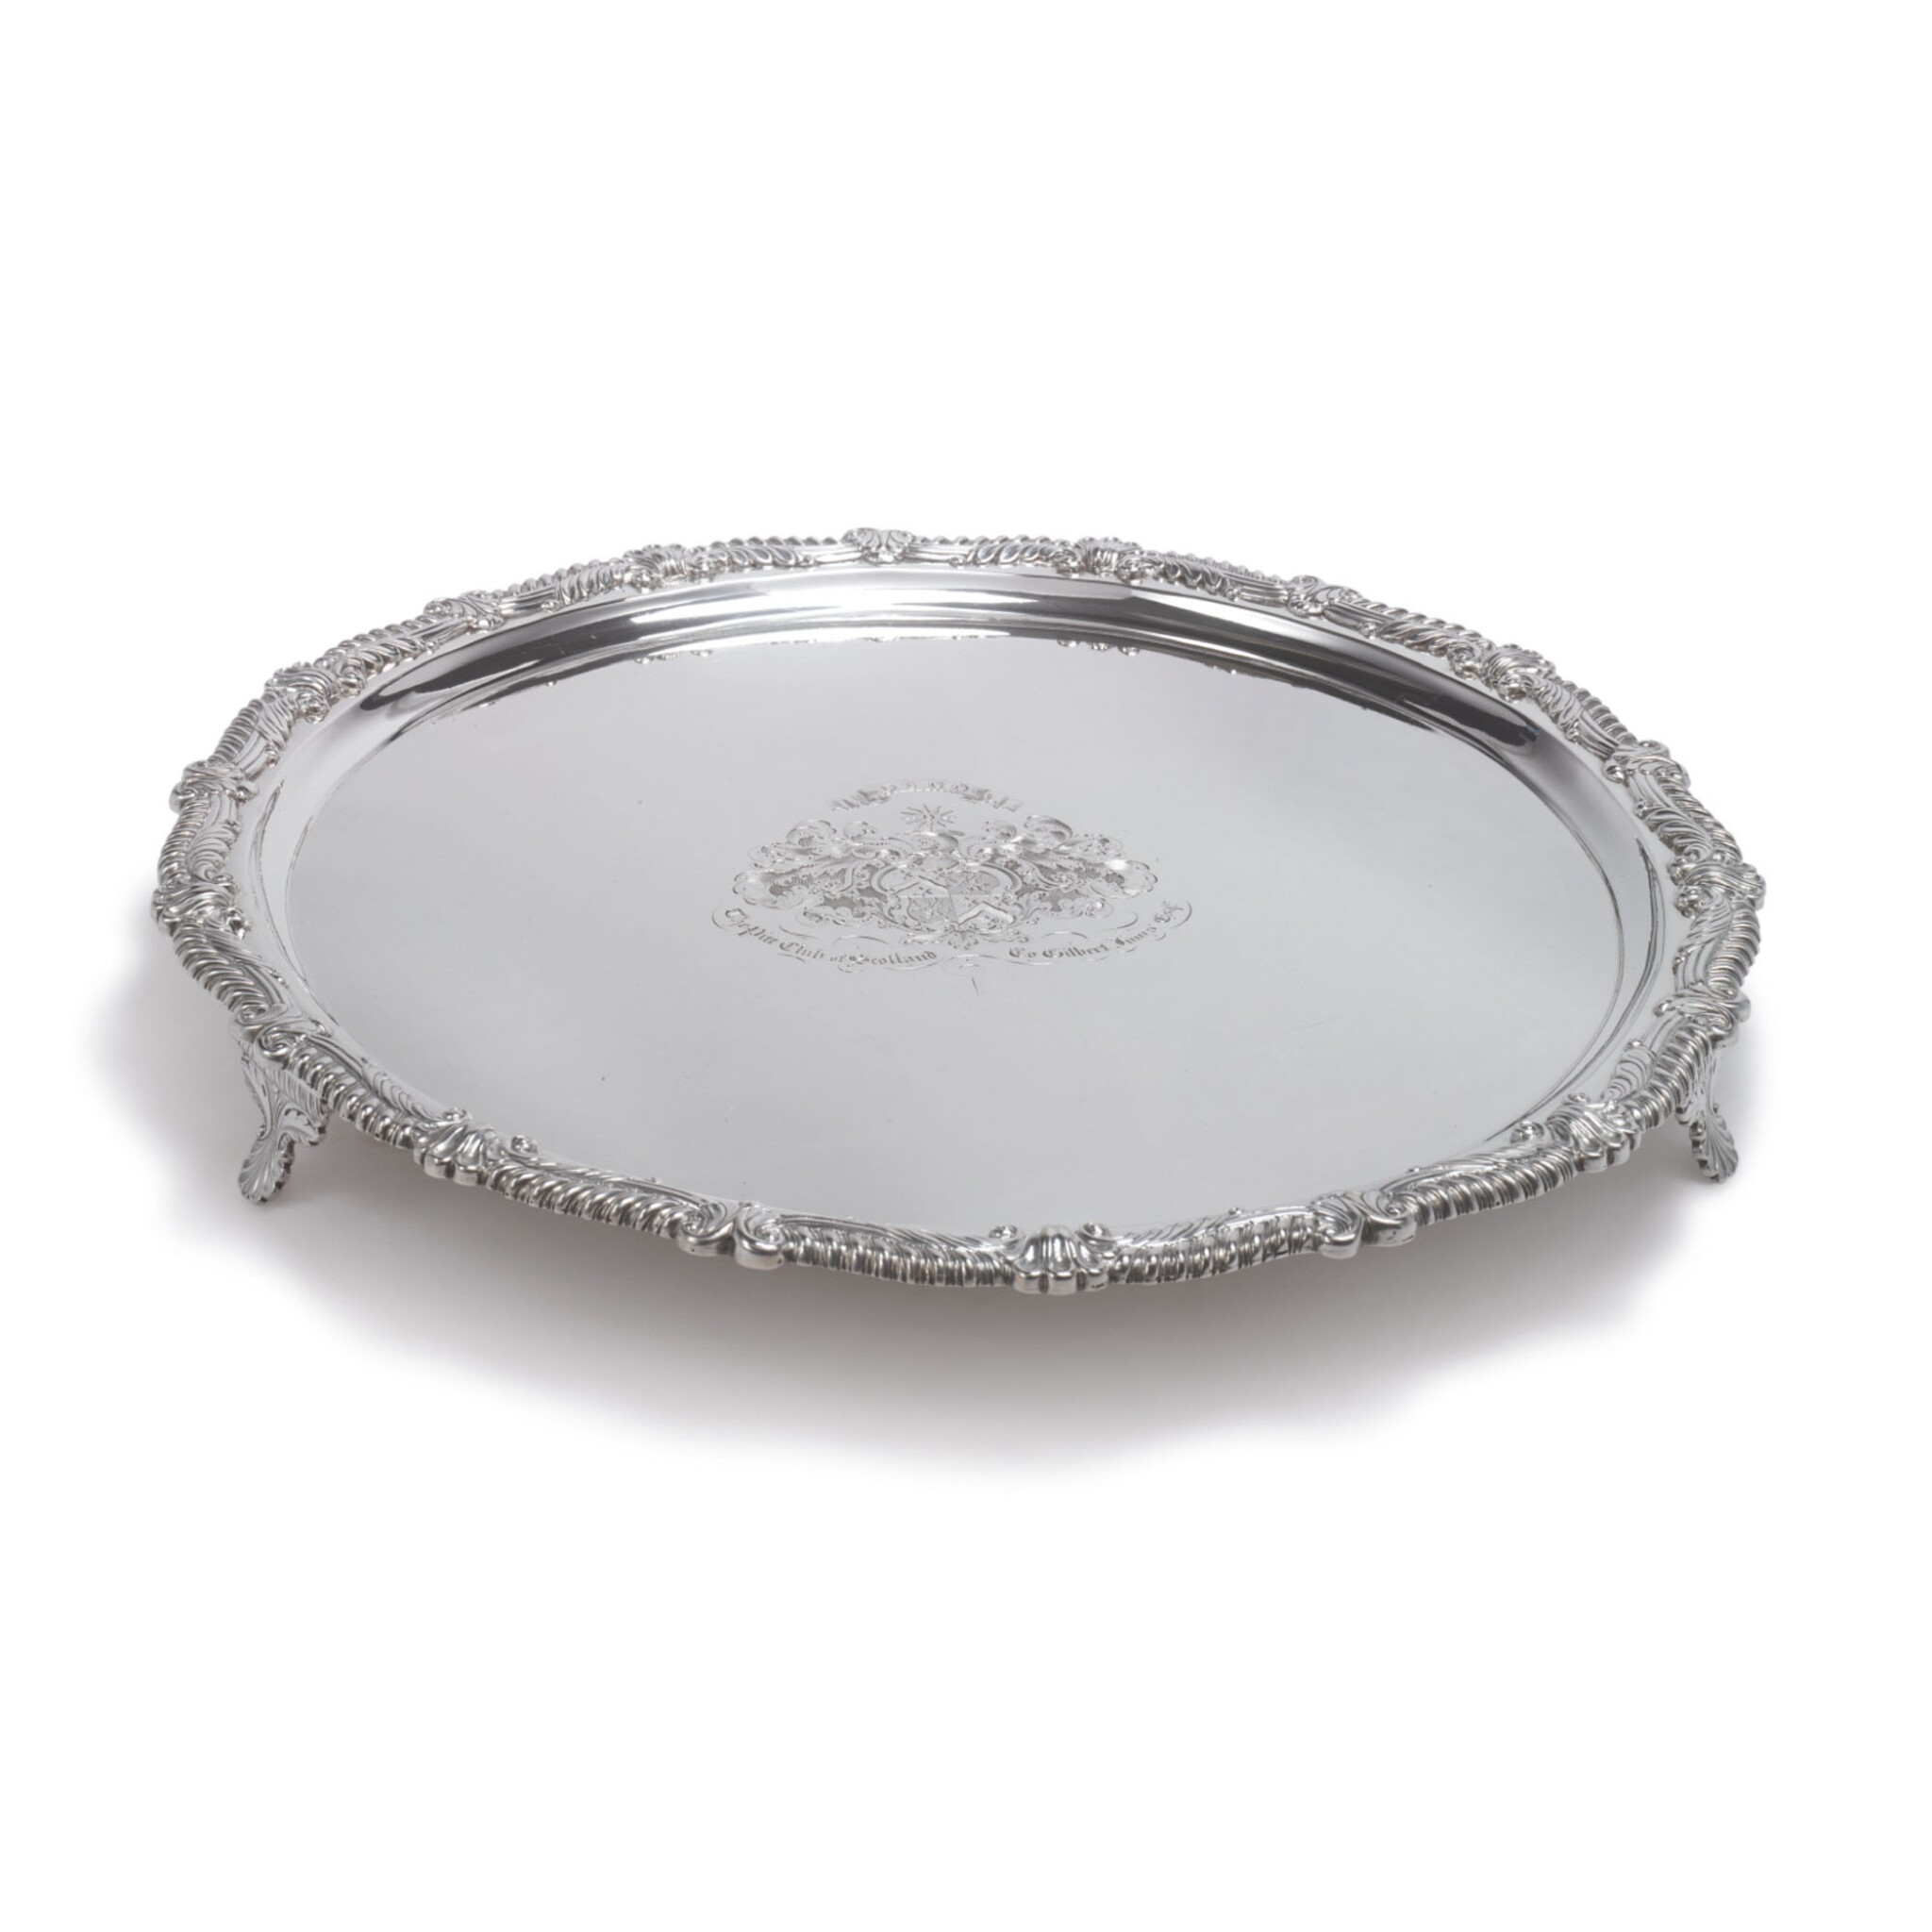 View full screen - View 1 of Lot 635. A SCOTTISH SILVER SALVER, GEORGE FENWICK, EDINBURGH, 1814.